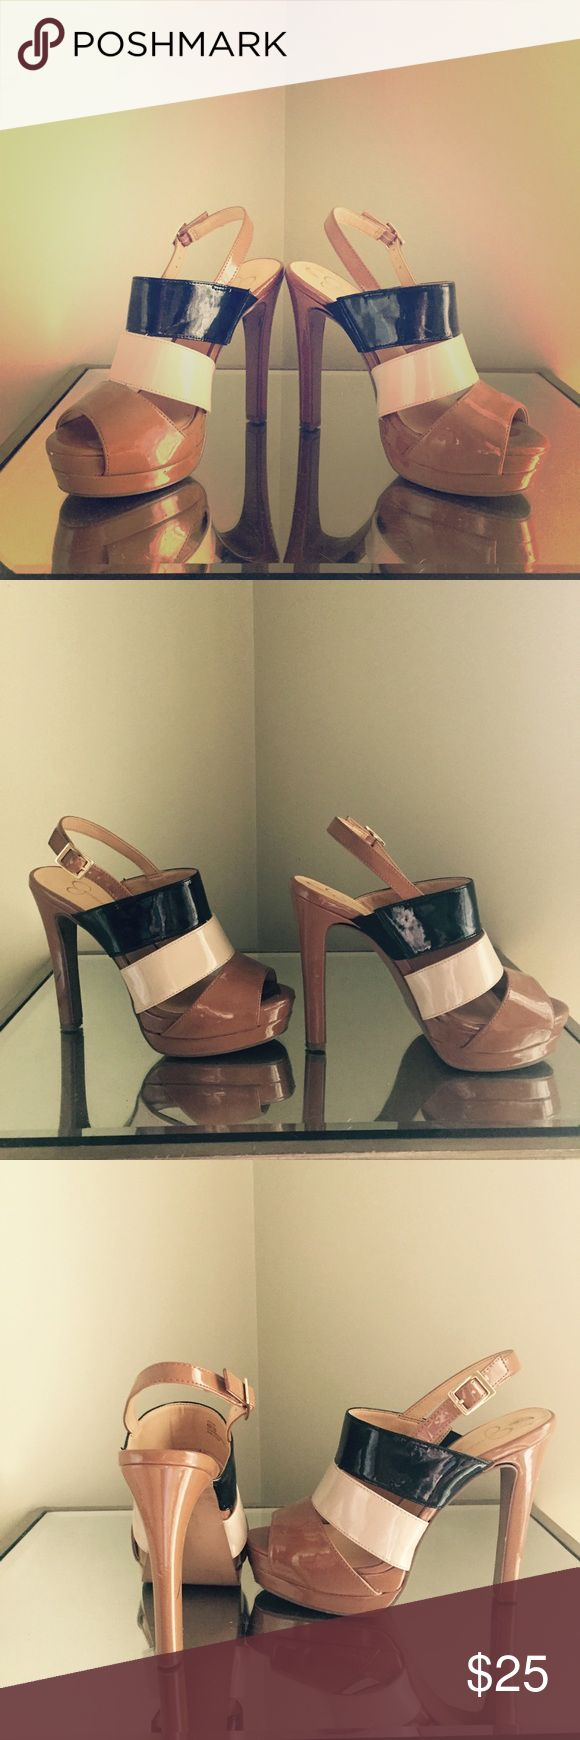 """Jessica Simpson Heels with Ankle Strap Jessica Simpson Heels with Ankle Strap. Size 6. 4"""" heel with 1/2"""" platform. Gently worn. Small scuff on right heel, but I haven't tried cleaning them. Small marks along heels. Jessica Simpson Shoes Heels"""